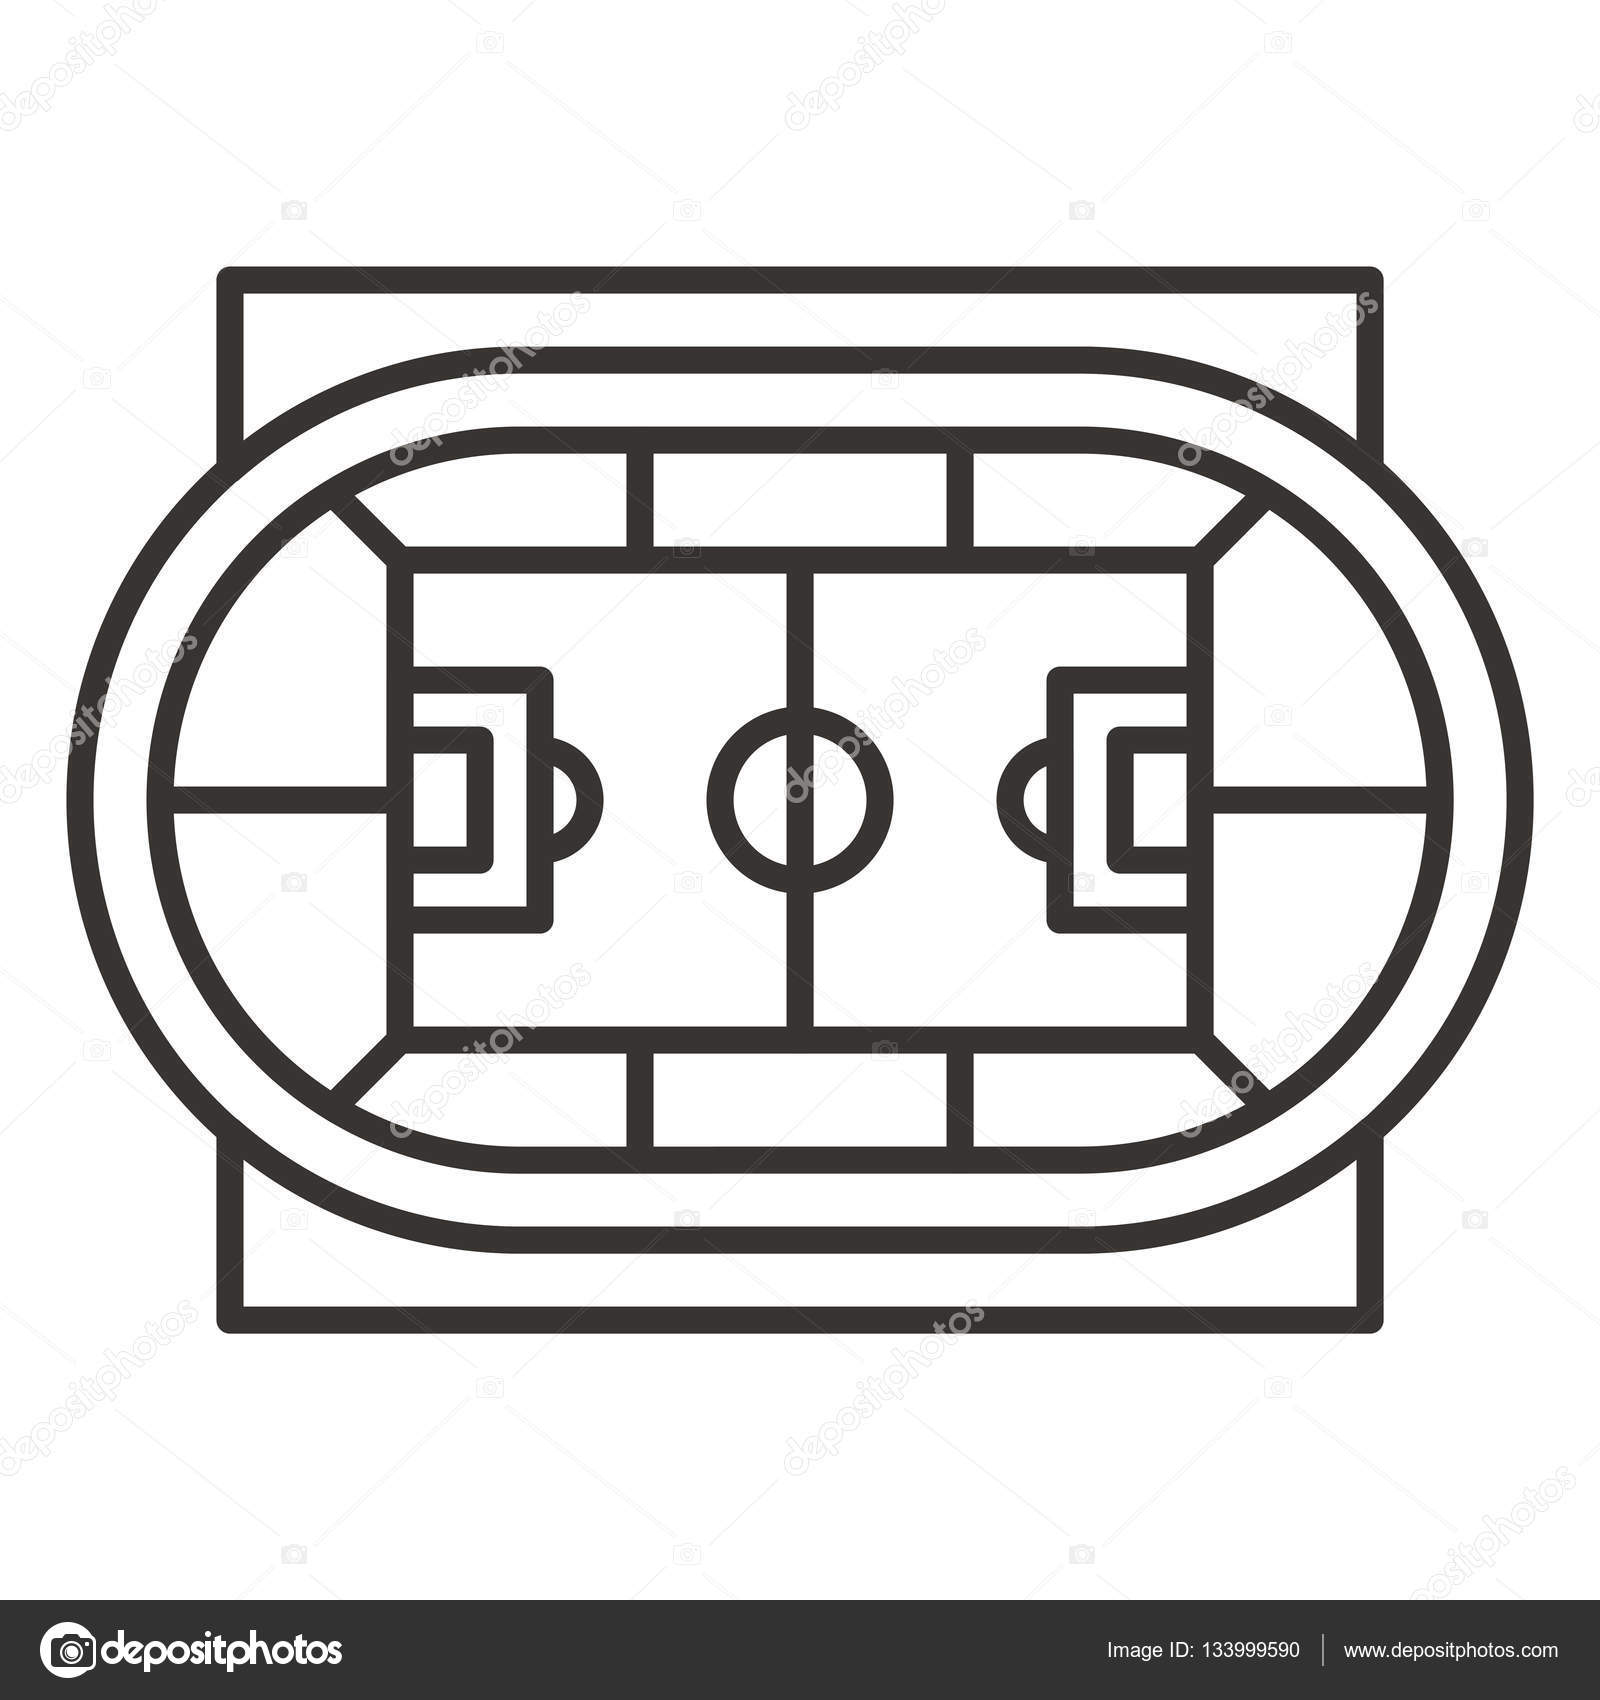 stadium icon. Stadium Top View Icon \u2014 Stock Vector #133999590